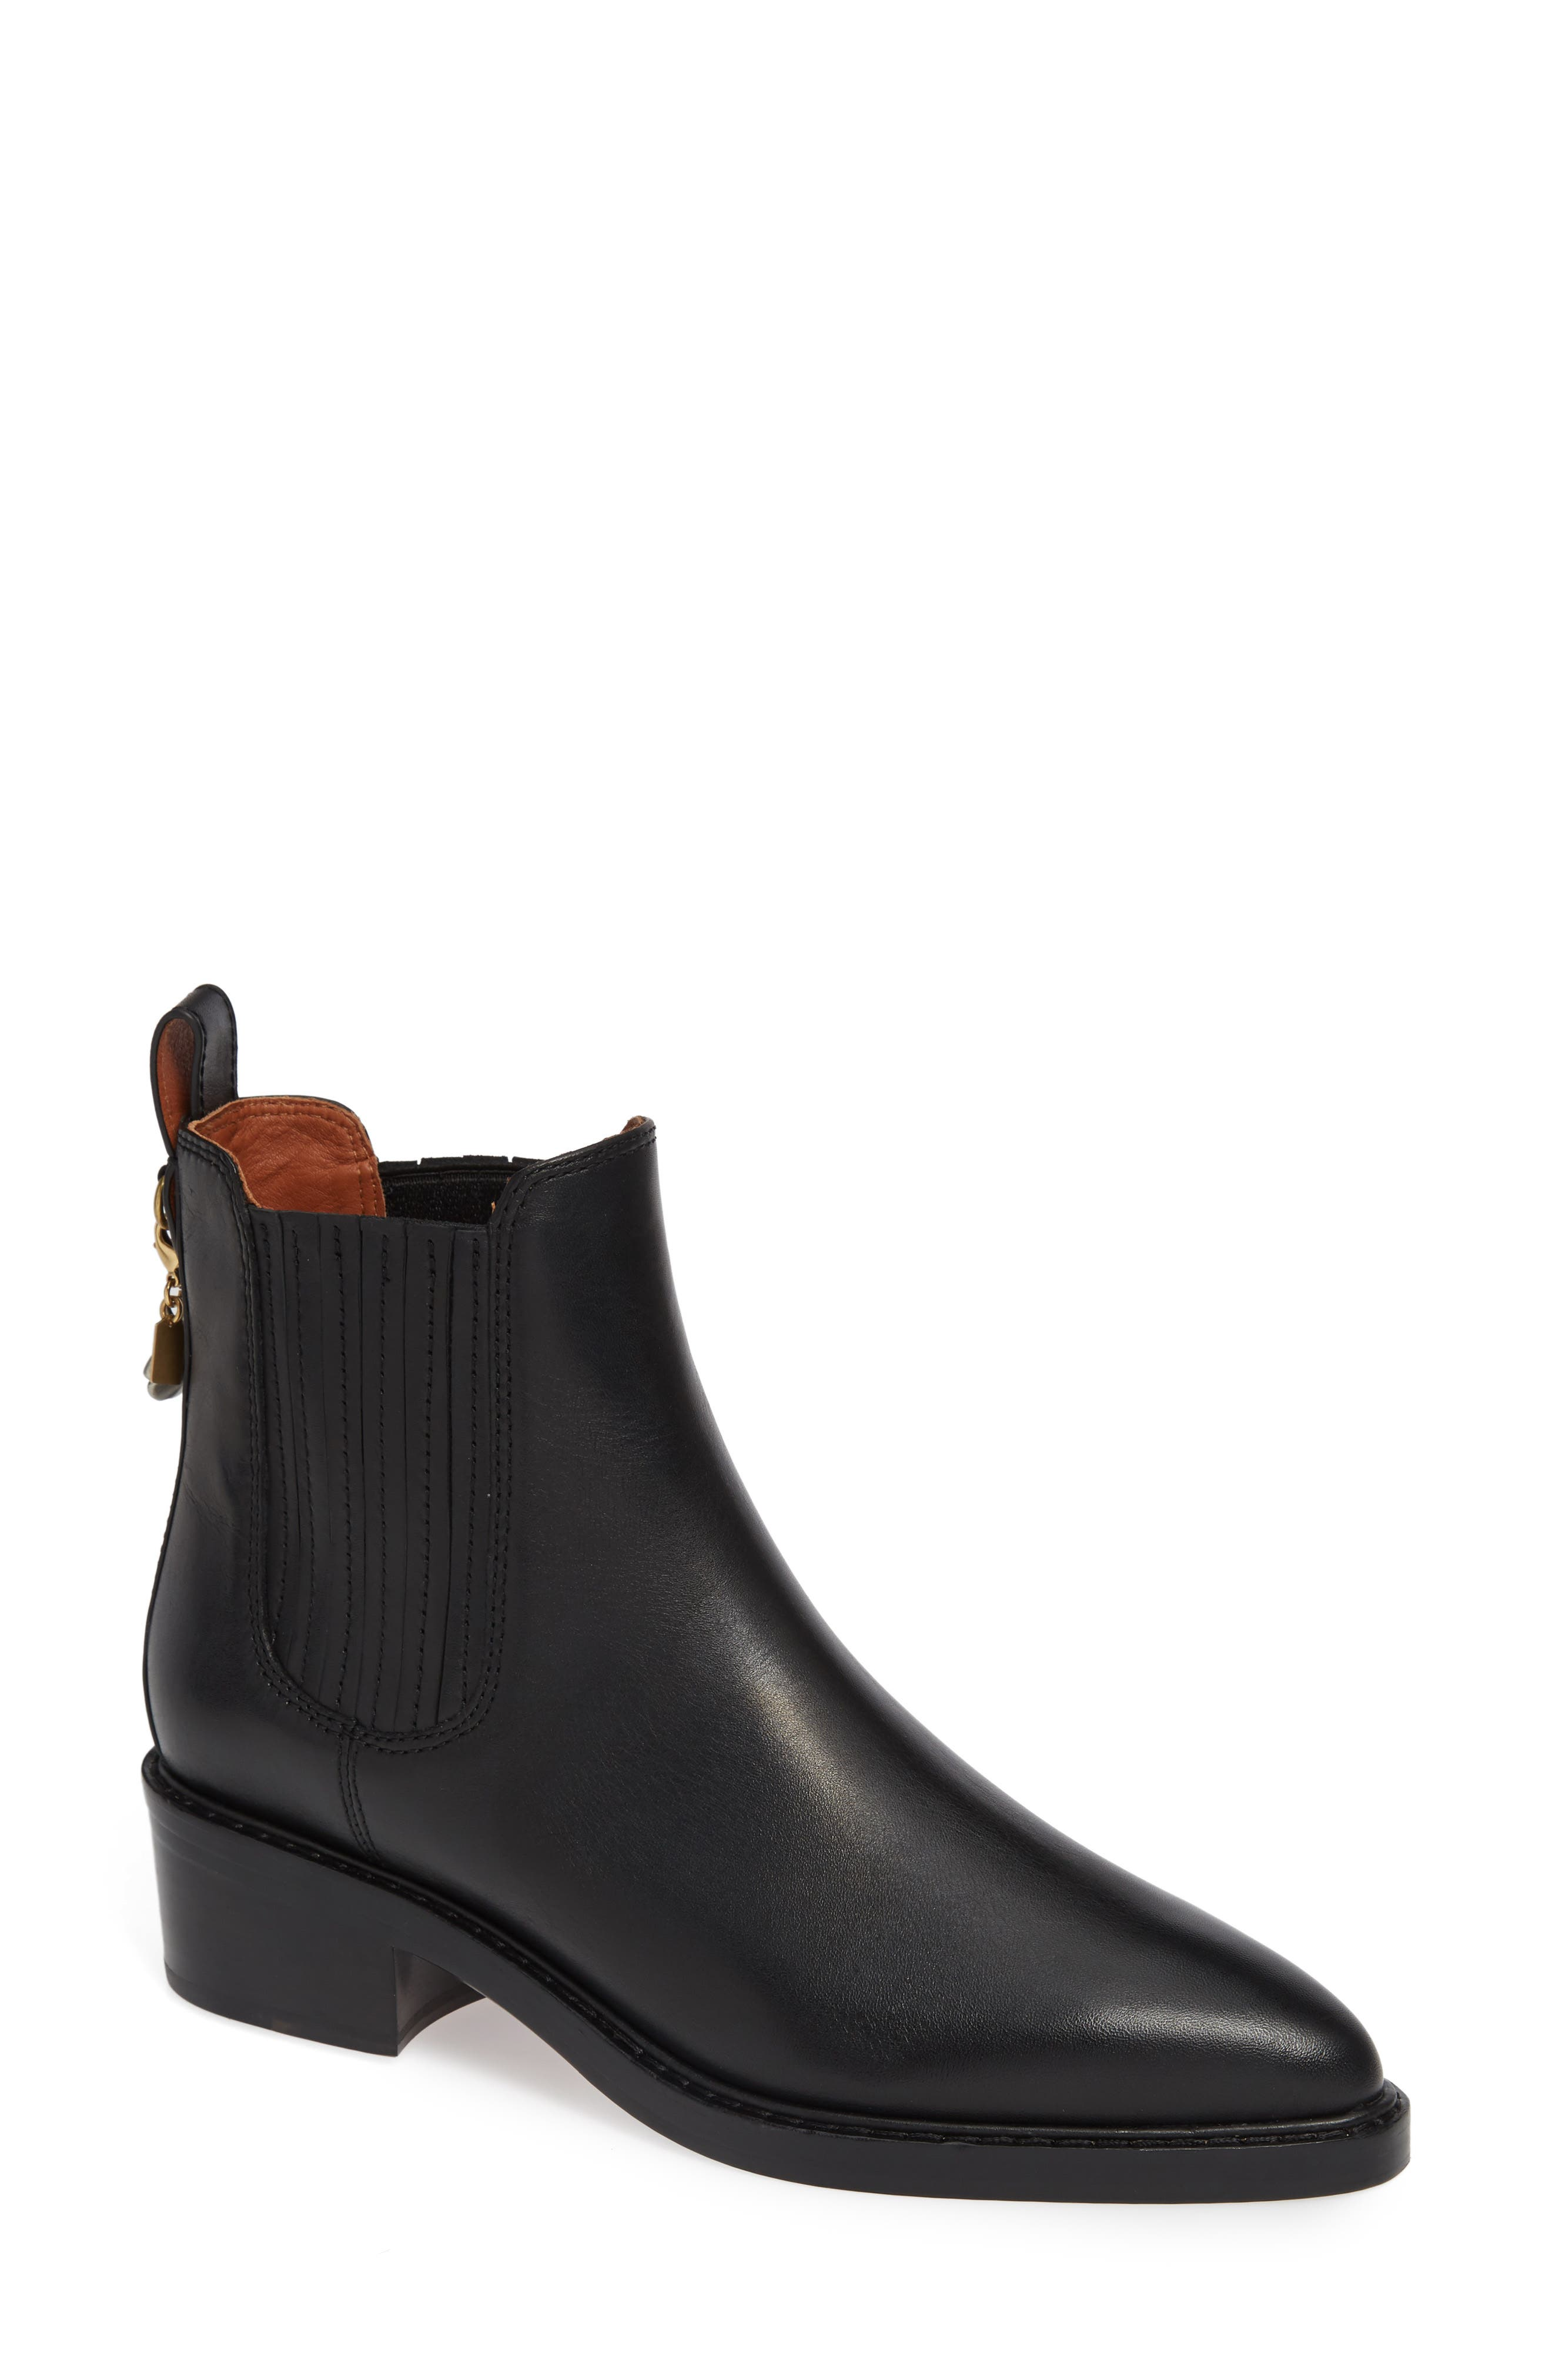 COACH Bowery Chelsea Bootie, Main, color, 001